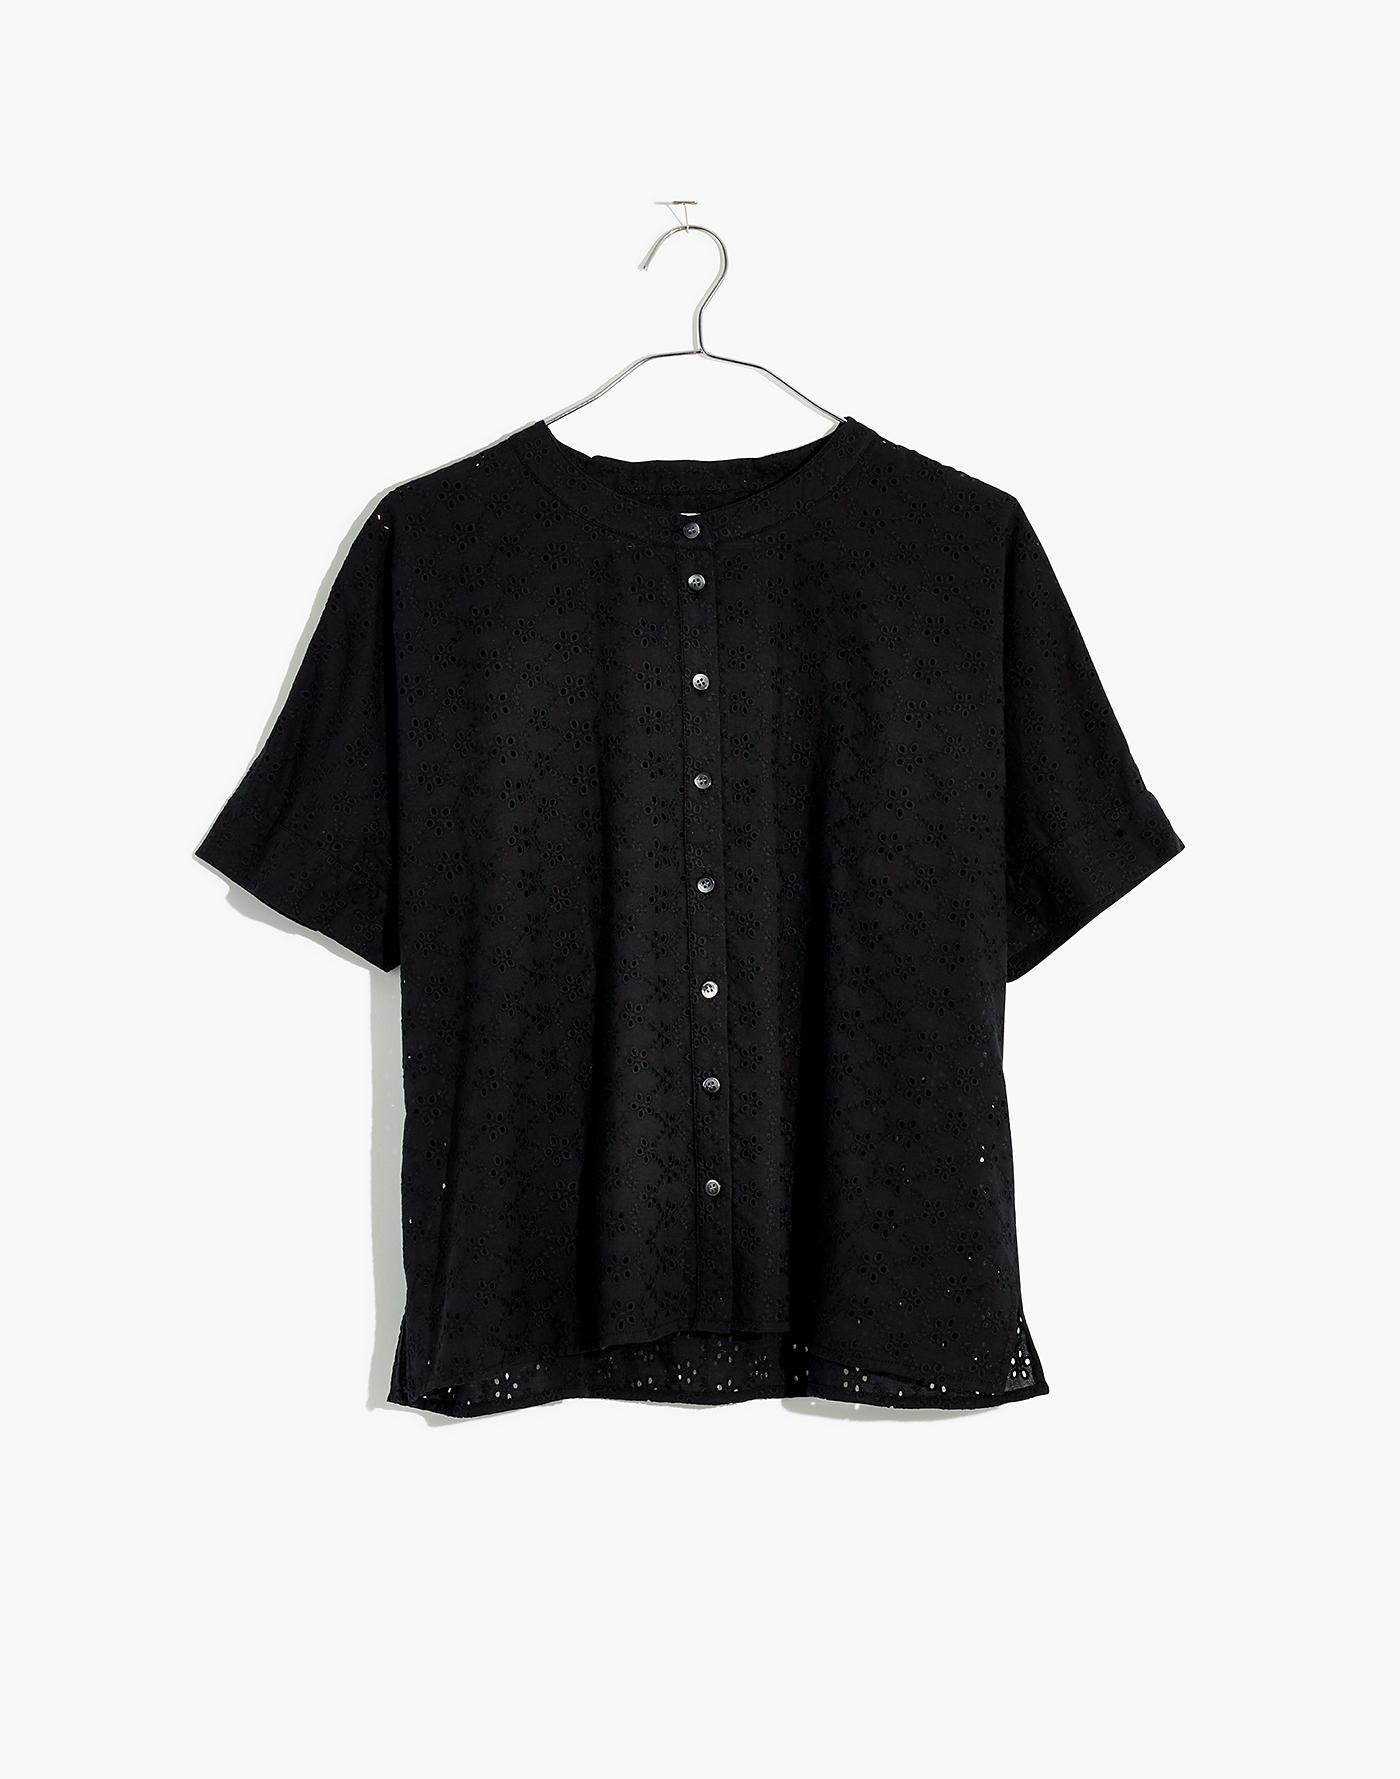 b7a81900 Madewell Eyelet Boxy Button-down Shirt in Black - Lyst